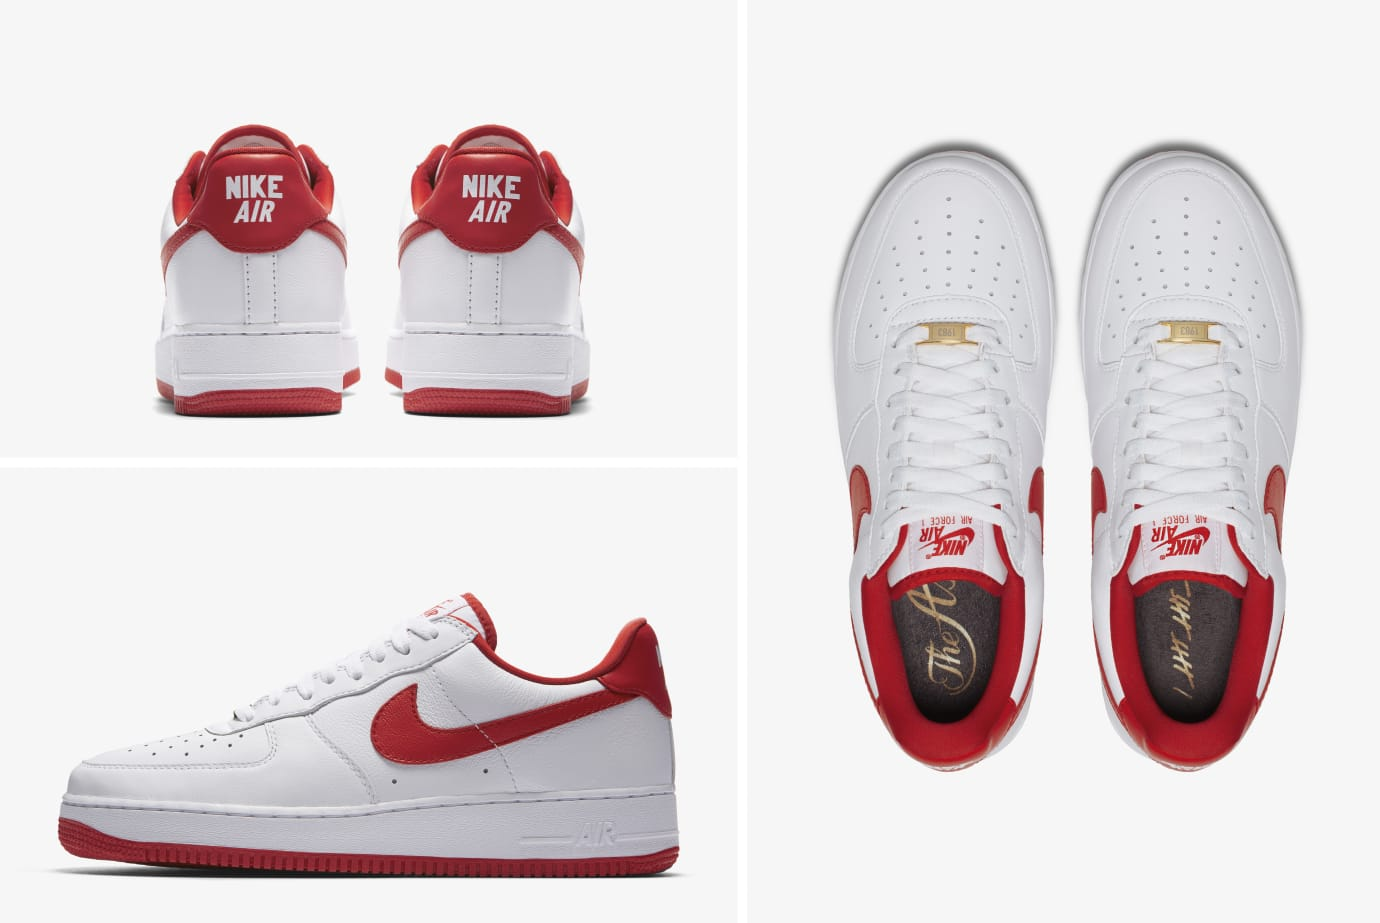 Nike Air Force 1 Low 'Fo Fi Fo'